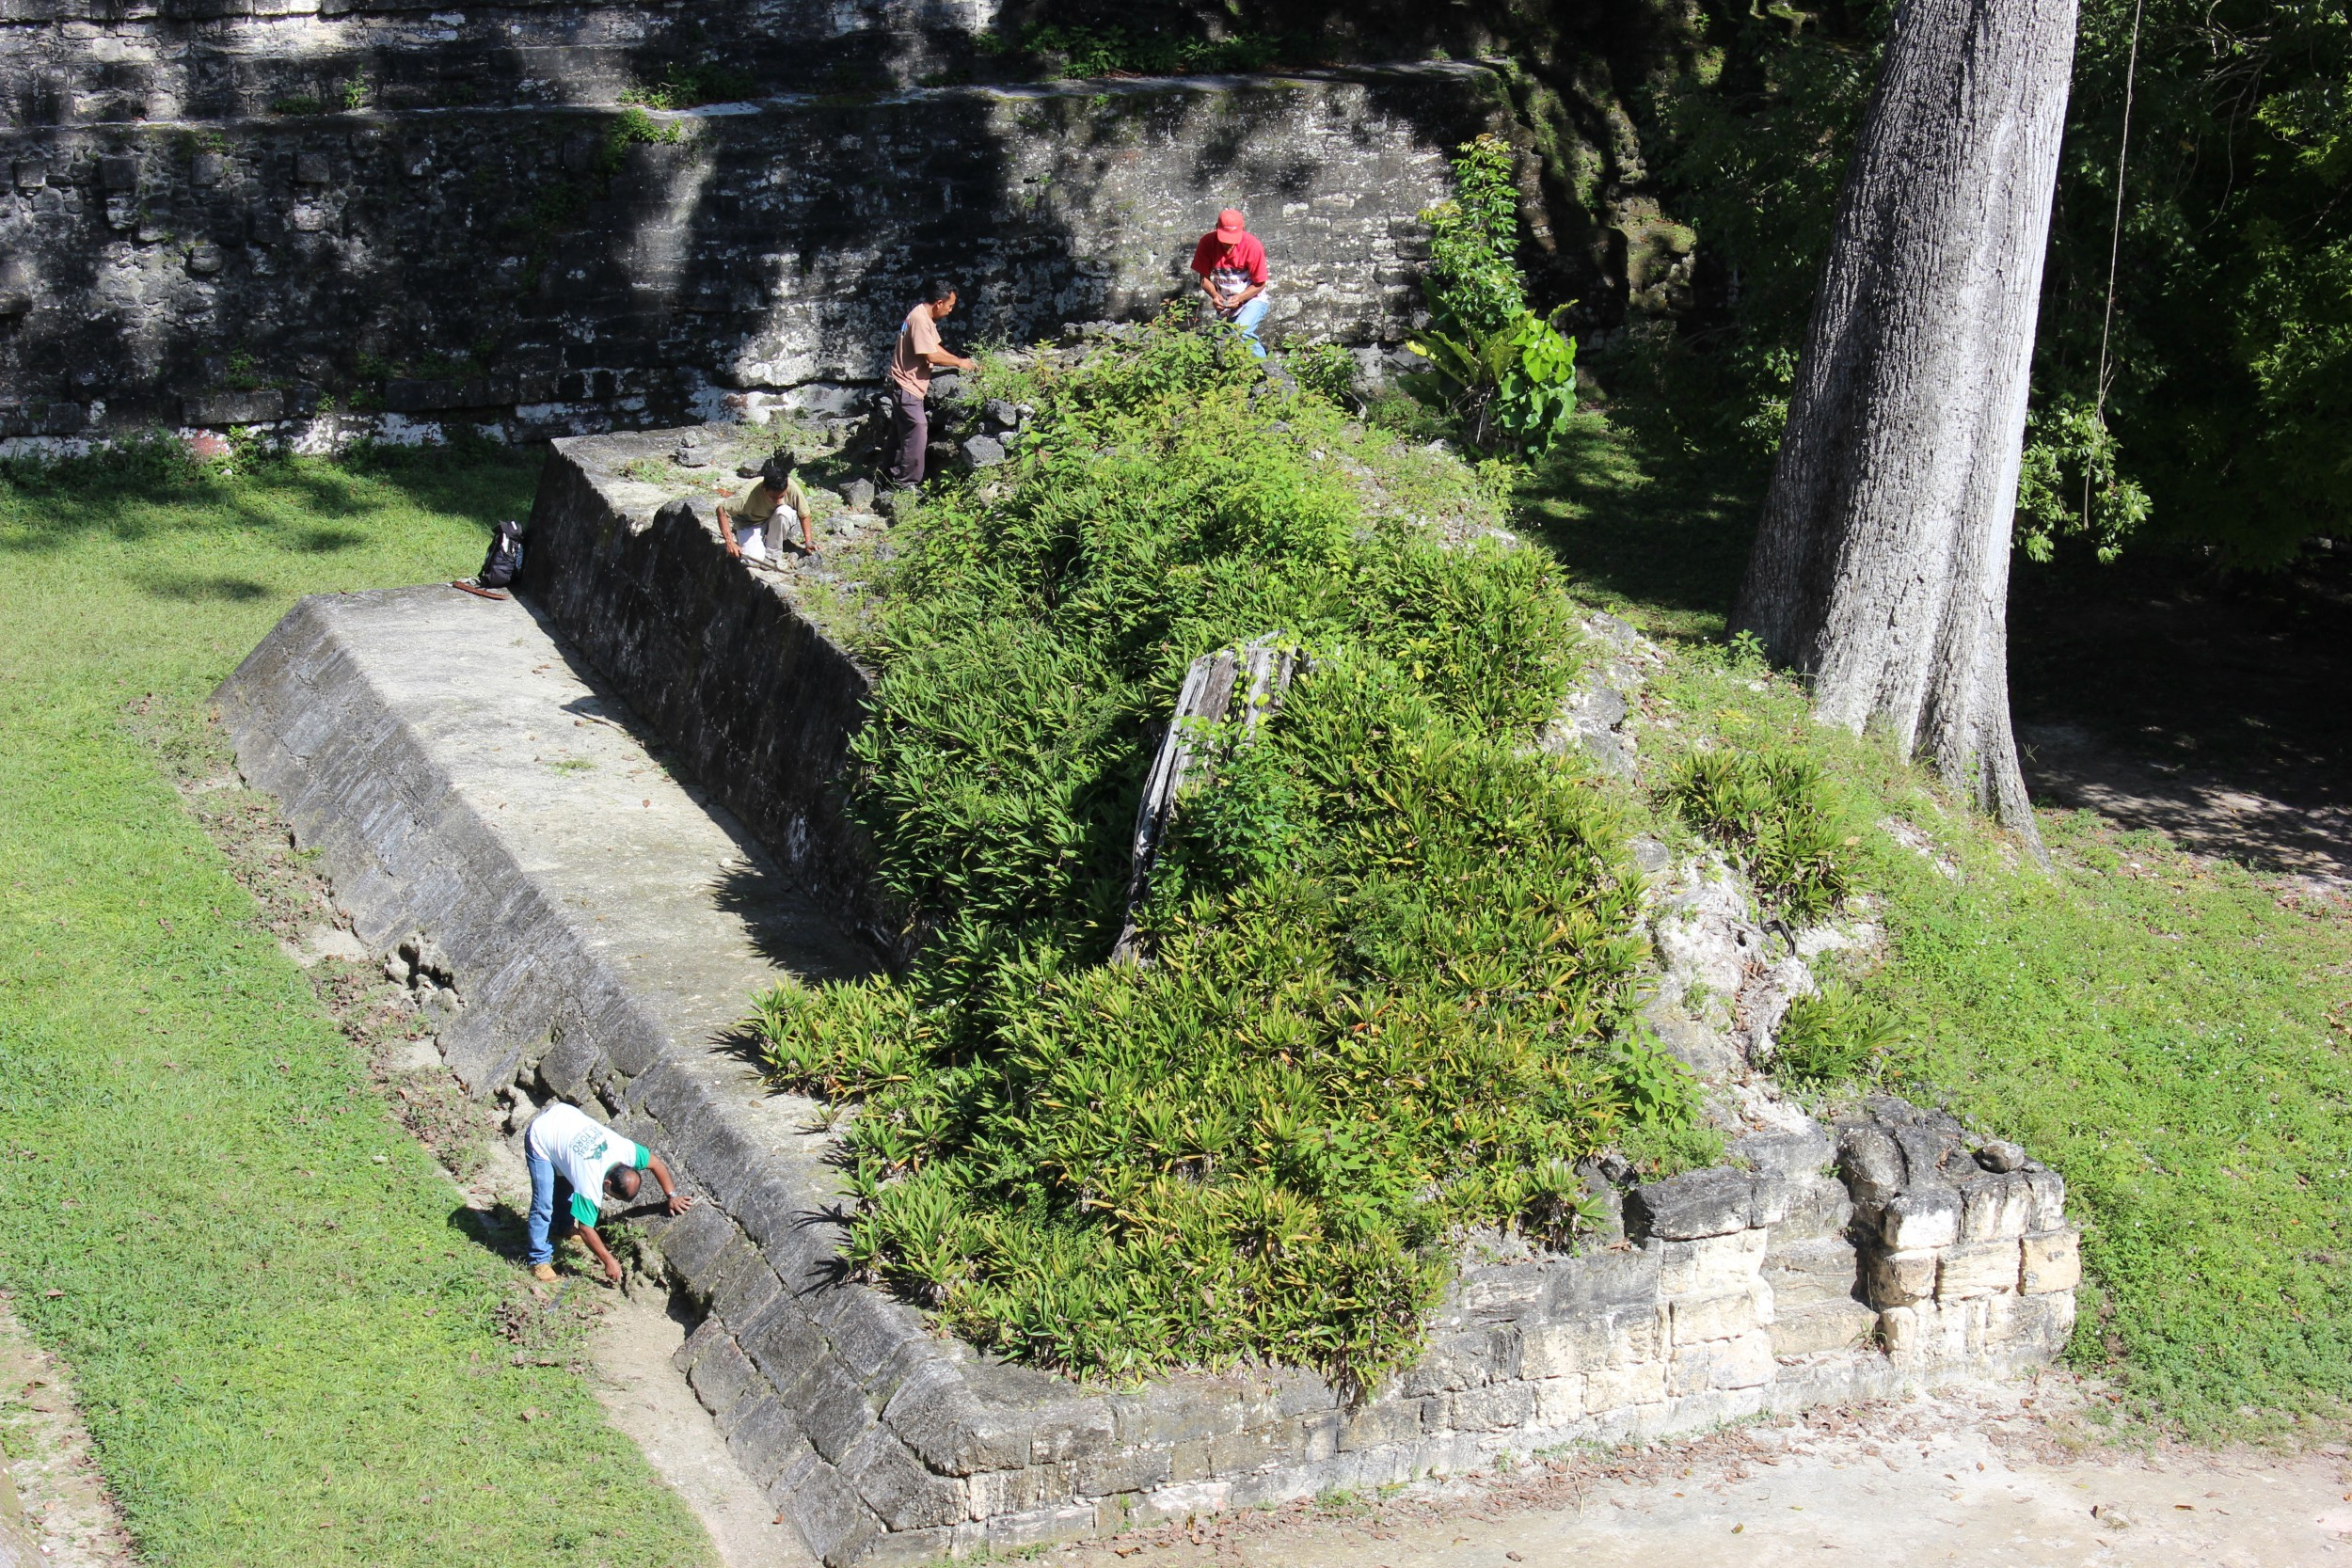 One of the magical parts of Tikal is that they are still working to uncover things.